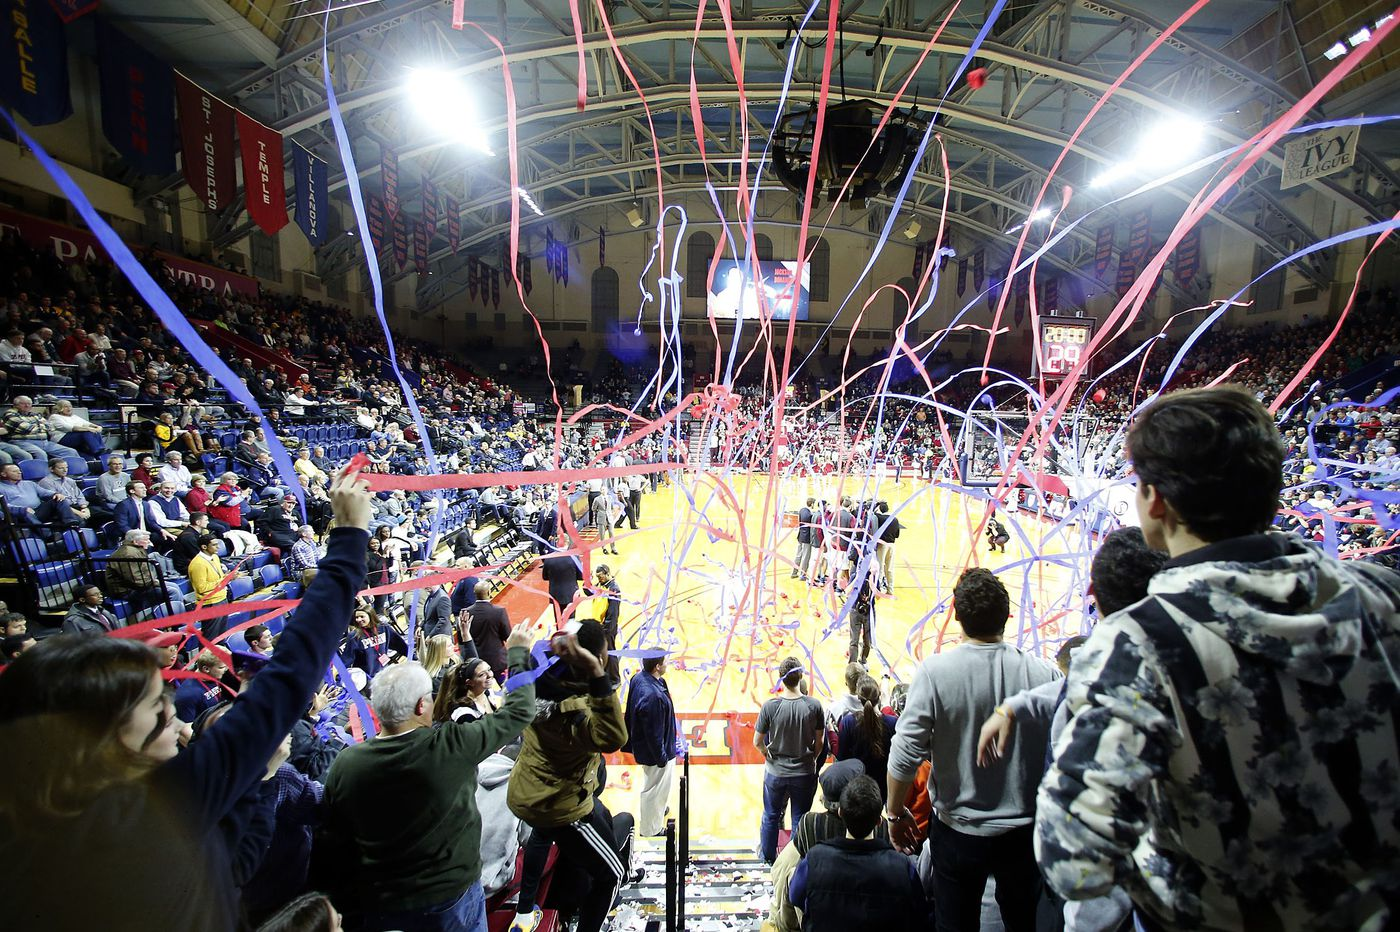 Penn's tone-deaf decision ignores the Palestra's place in history | Opinion